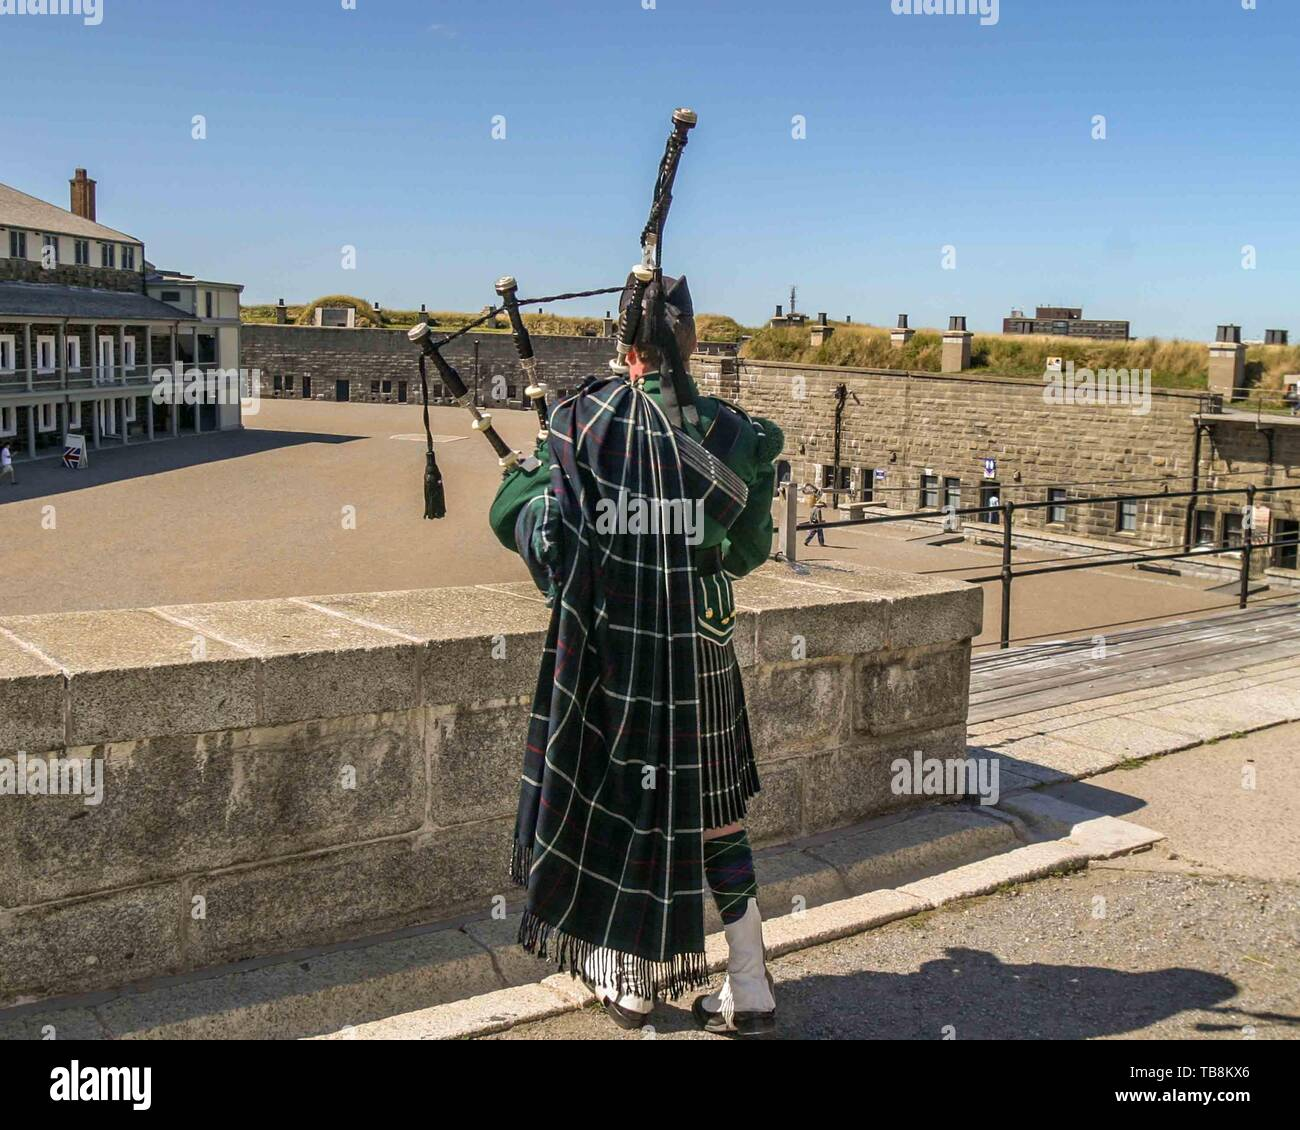 Halifax, Nova Scotia, Canada. 5th Sep, 2005. A re-enactor of the 78th Highlanders Pipe Band plays the bagpipe on Citadel Hill (Fort George), a National Historic Site in Halifax, Nova Scotia. A living history museum, the fort is among the most visited sites in Atlantic Canada. Credit: Arnold Drapkin/ZUMA Wire/Alamy Live News - Stock Image